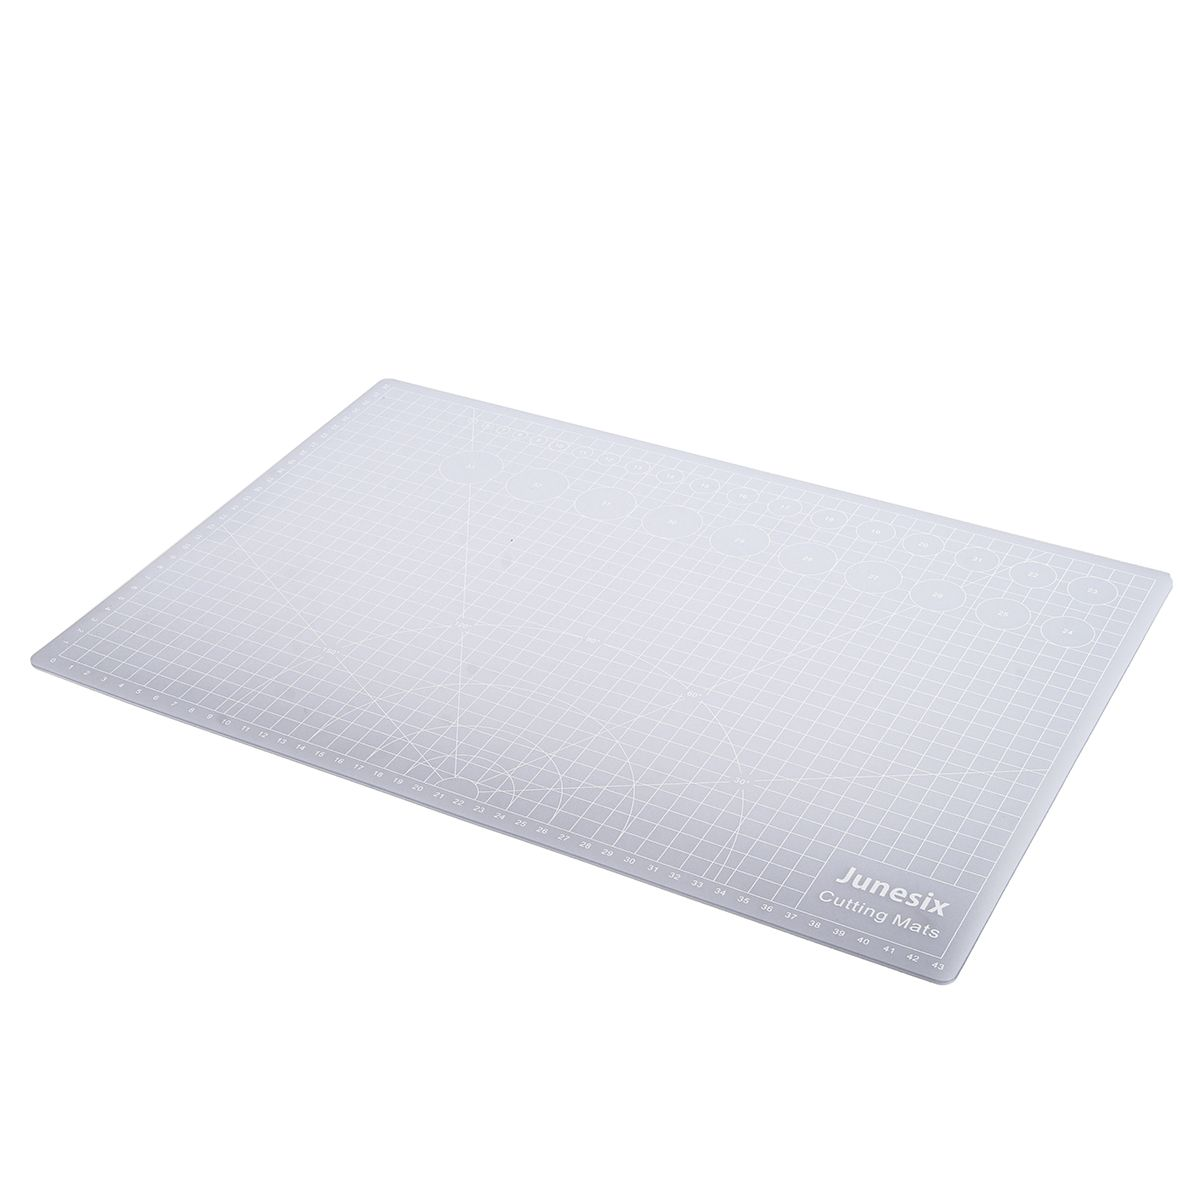 Composite PVC A5 Replacement Cutting Mat Transparent Mat With Measuring Grid For Silhouette Cameo Plotter Machine